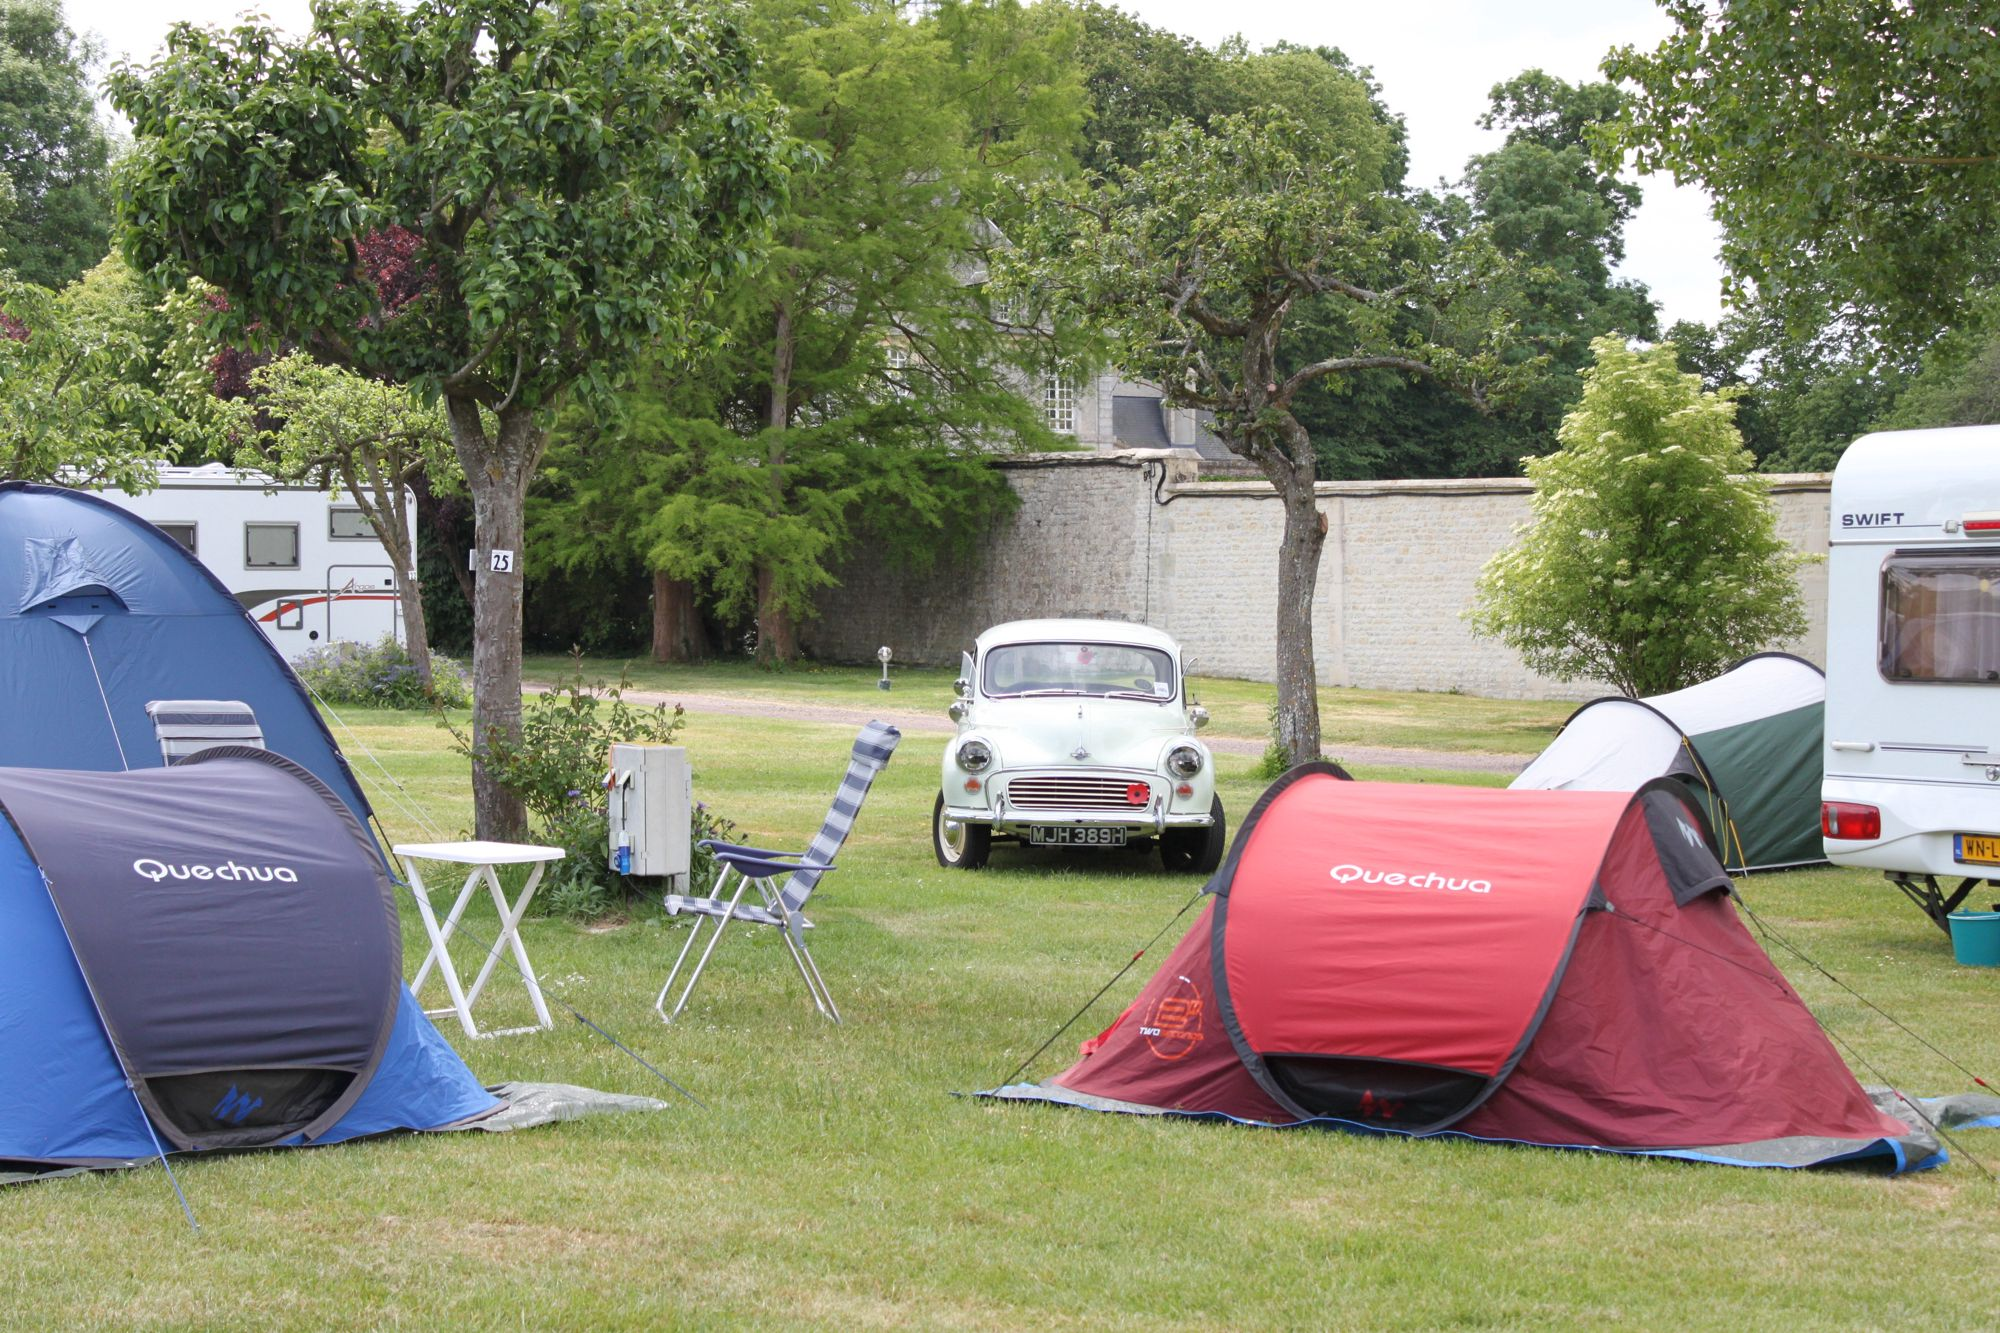 Camping in the grounds of a château a stones throw from historic Bayeux and the famous Normandy beaches.